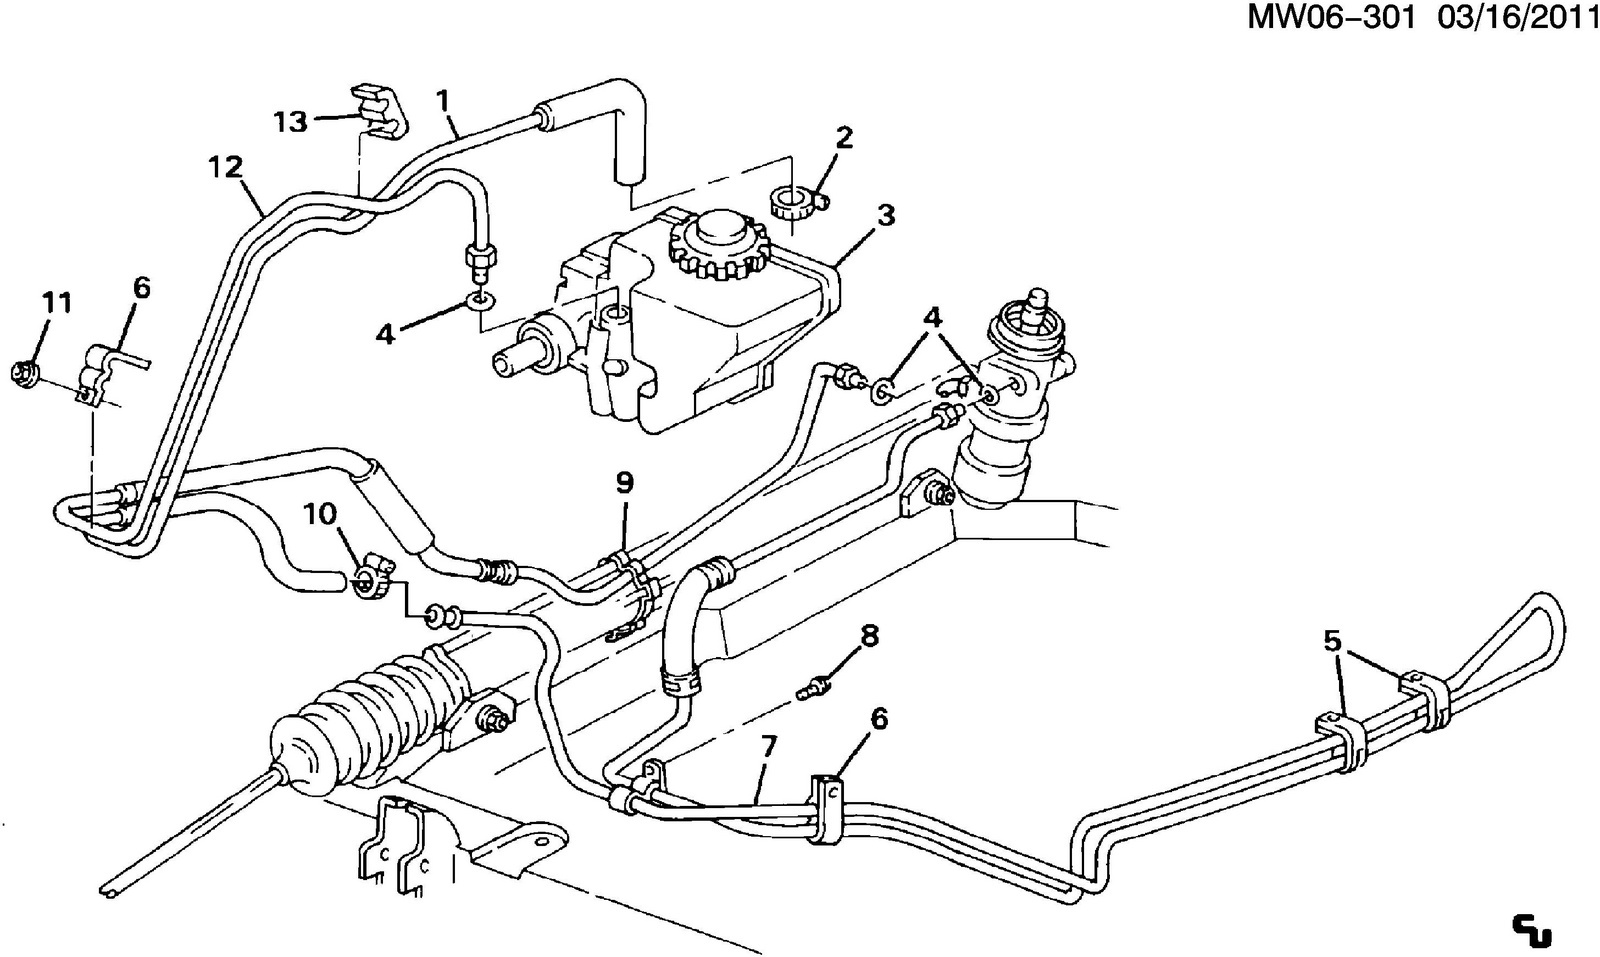 95 grand prix wiring diagram 2007 pontiac grand prix wiring diagram pontiac grand prix questions 1993 power steering pump